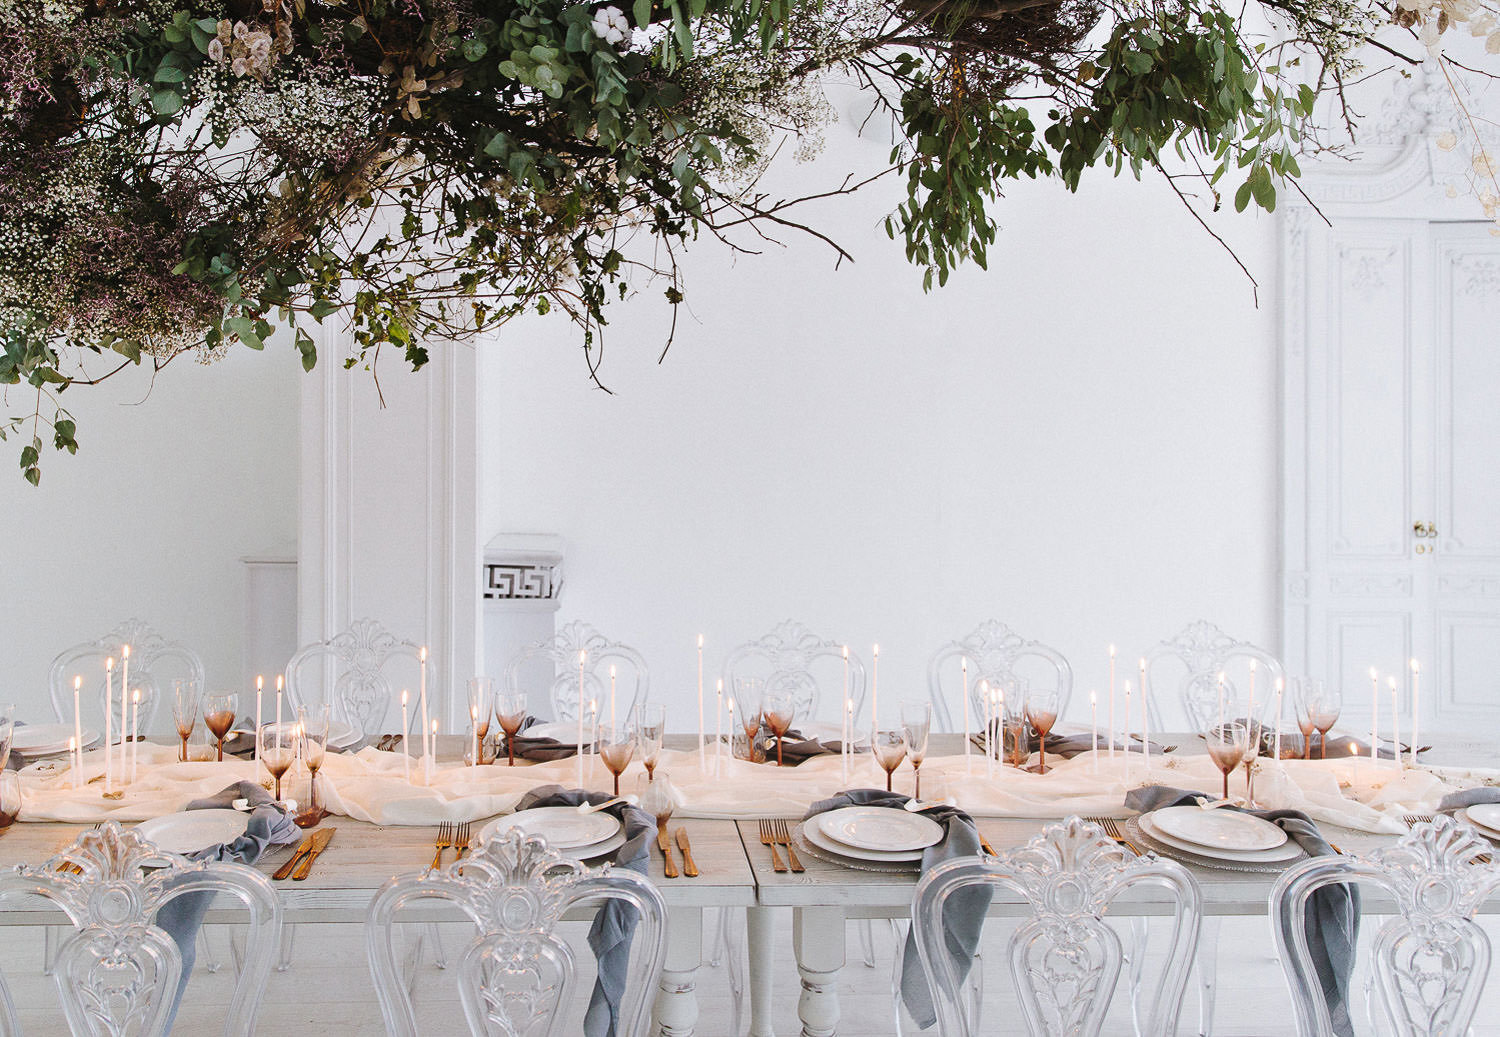 Wedding tablescape for a refined and elegant wedding on Lake Como at Villa Bianca Stucchi.